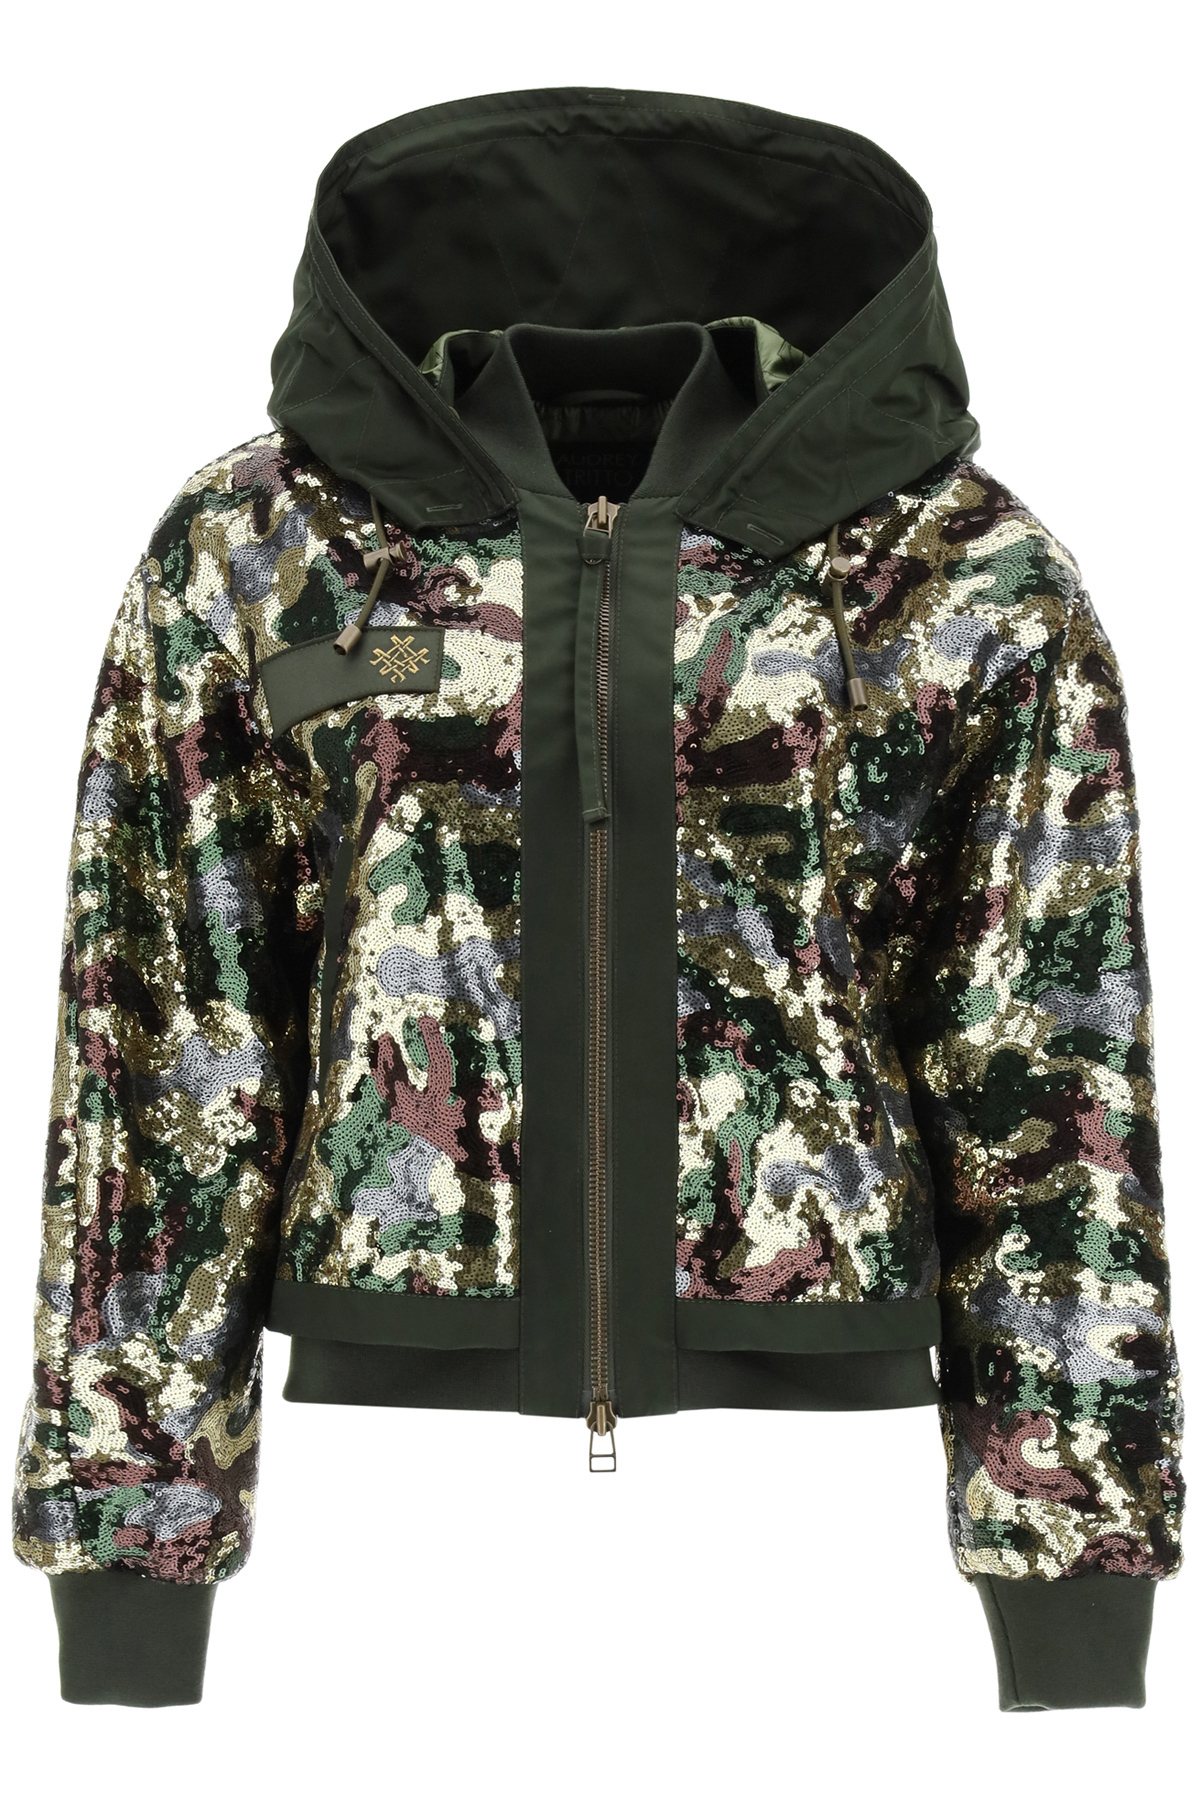 Mr & Mrs Italy CAMOUFLAGE SEQUINED BOMBER JACKET